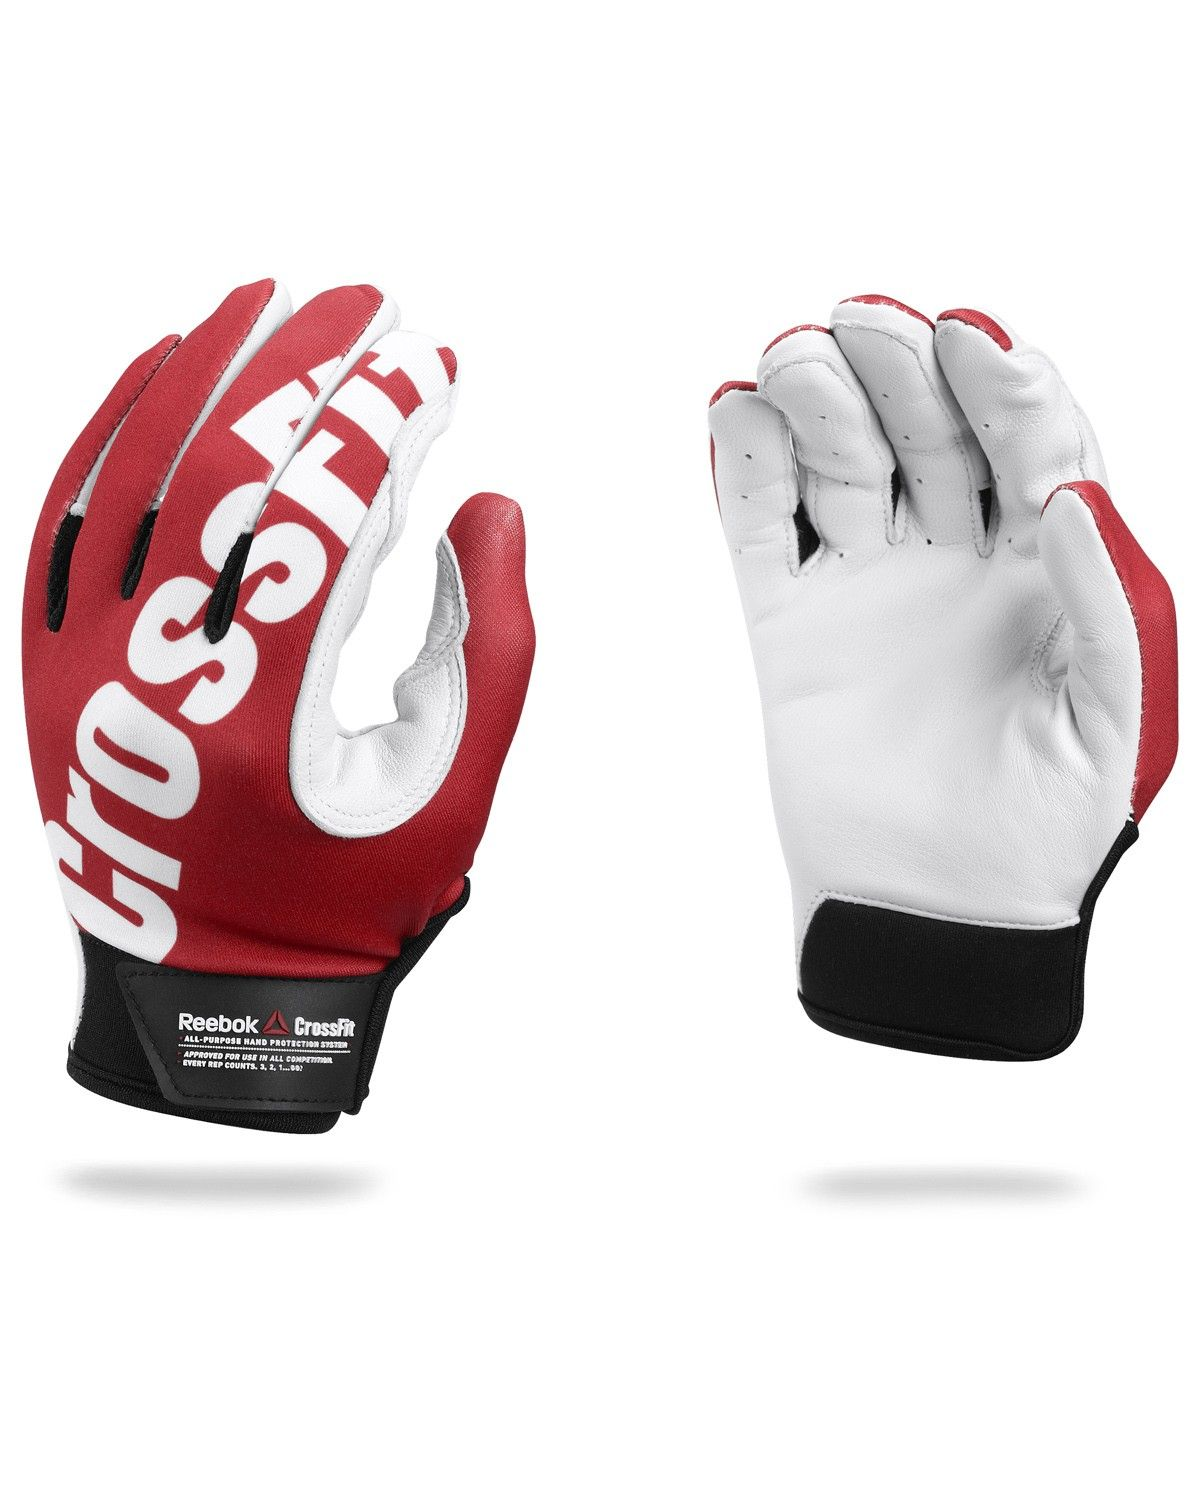 CrossFit HQ Store- Women's Reebok CrossFit Gloves - Accessories Buy Authentic CrossFit T-Shirts ...